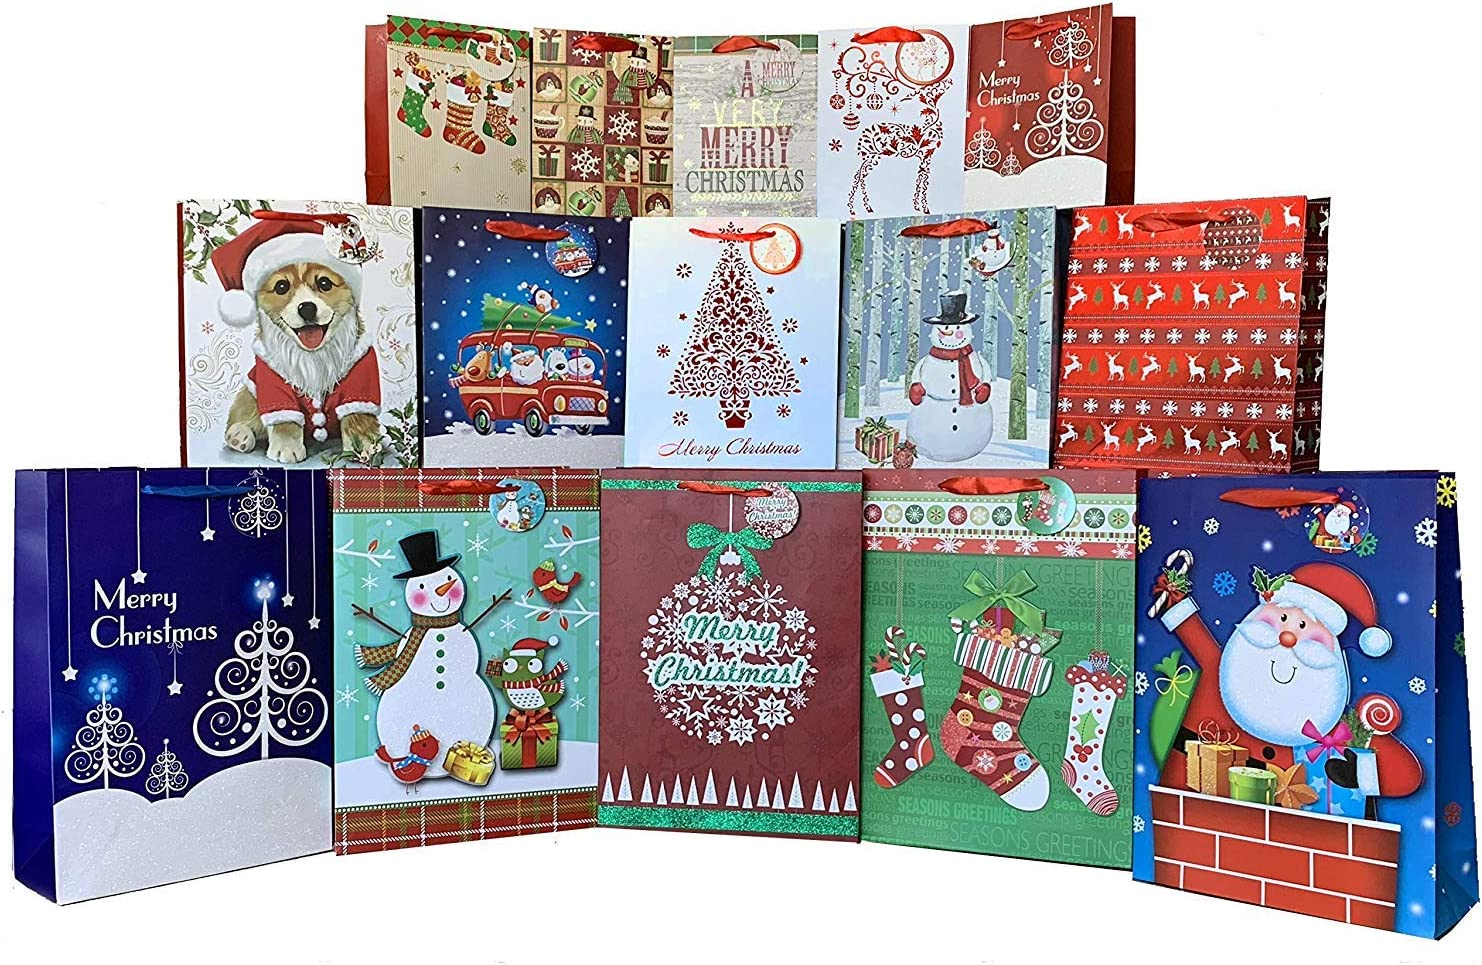 Christmas Gift Bags Assorted Sizes - Set of 15, Bulk, Large, Medium, Small, Handles, Gift Tags Included, Festive Holiday Gift Wrapping Decor